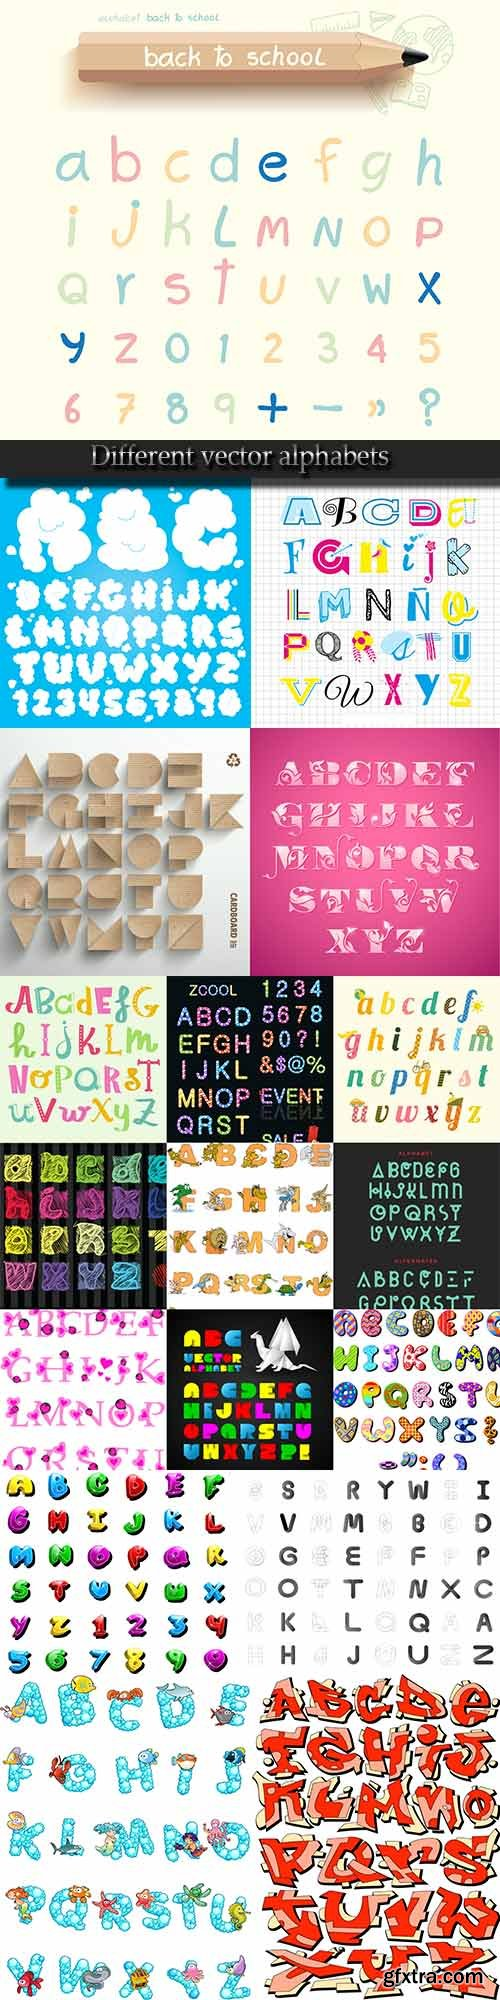 Different vector alphabets